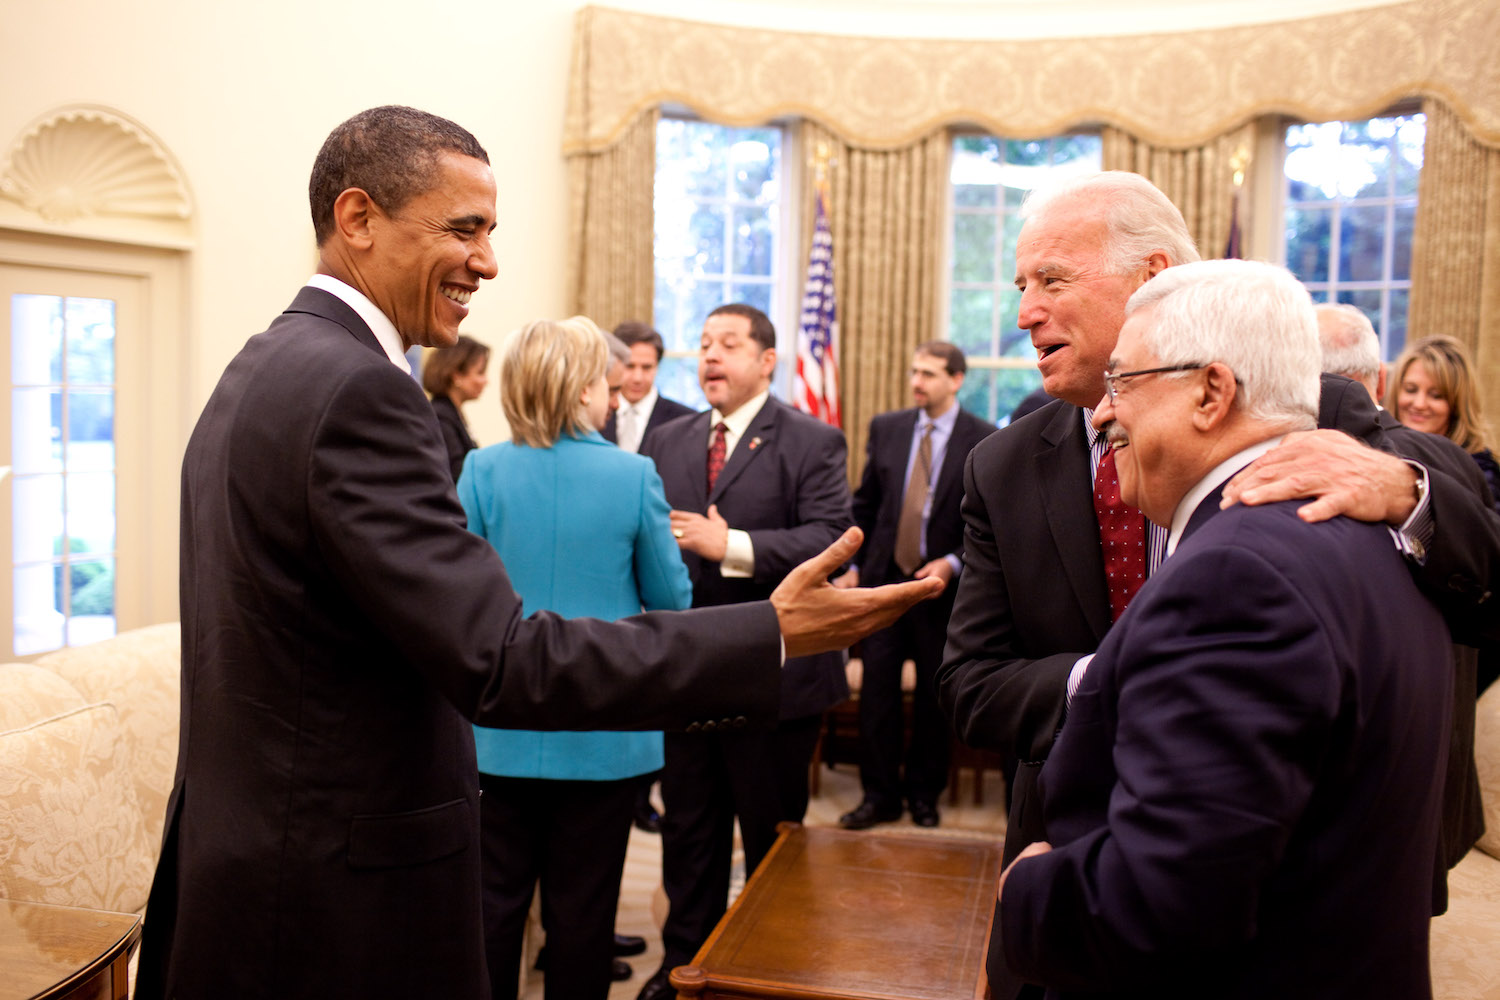 President Barack Obama and Vice President Joe Biden share a humorous moment with Palestinian Authority President Mahmoud Abbas in the Oval Office, May 28, 2009. (Official White House Photo by Pete Souza)